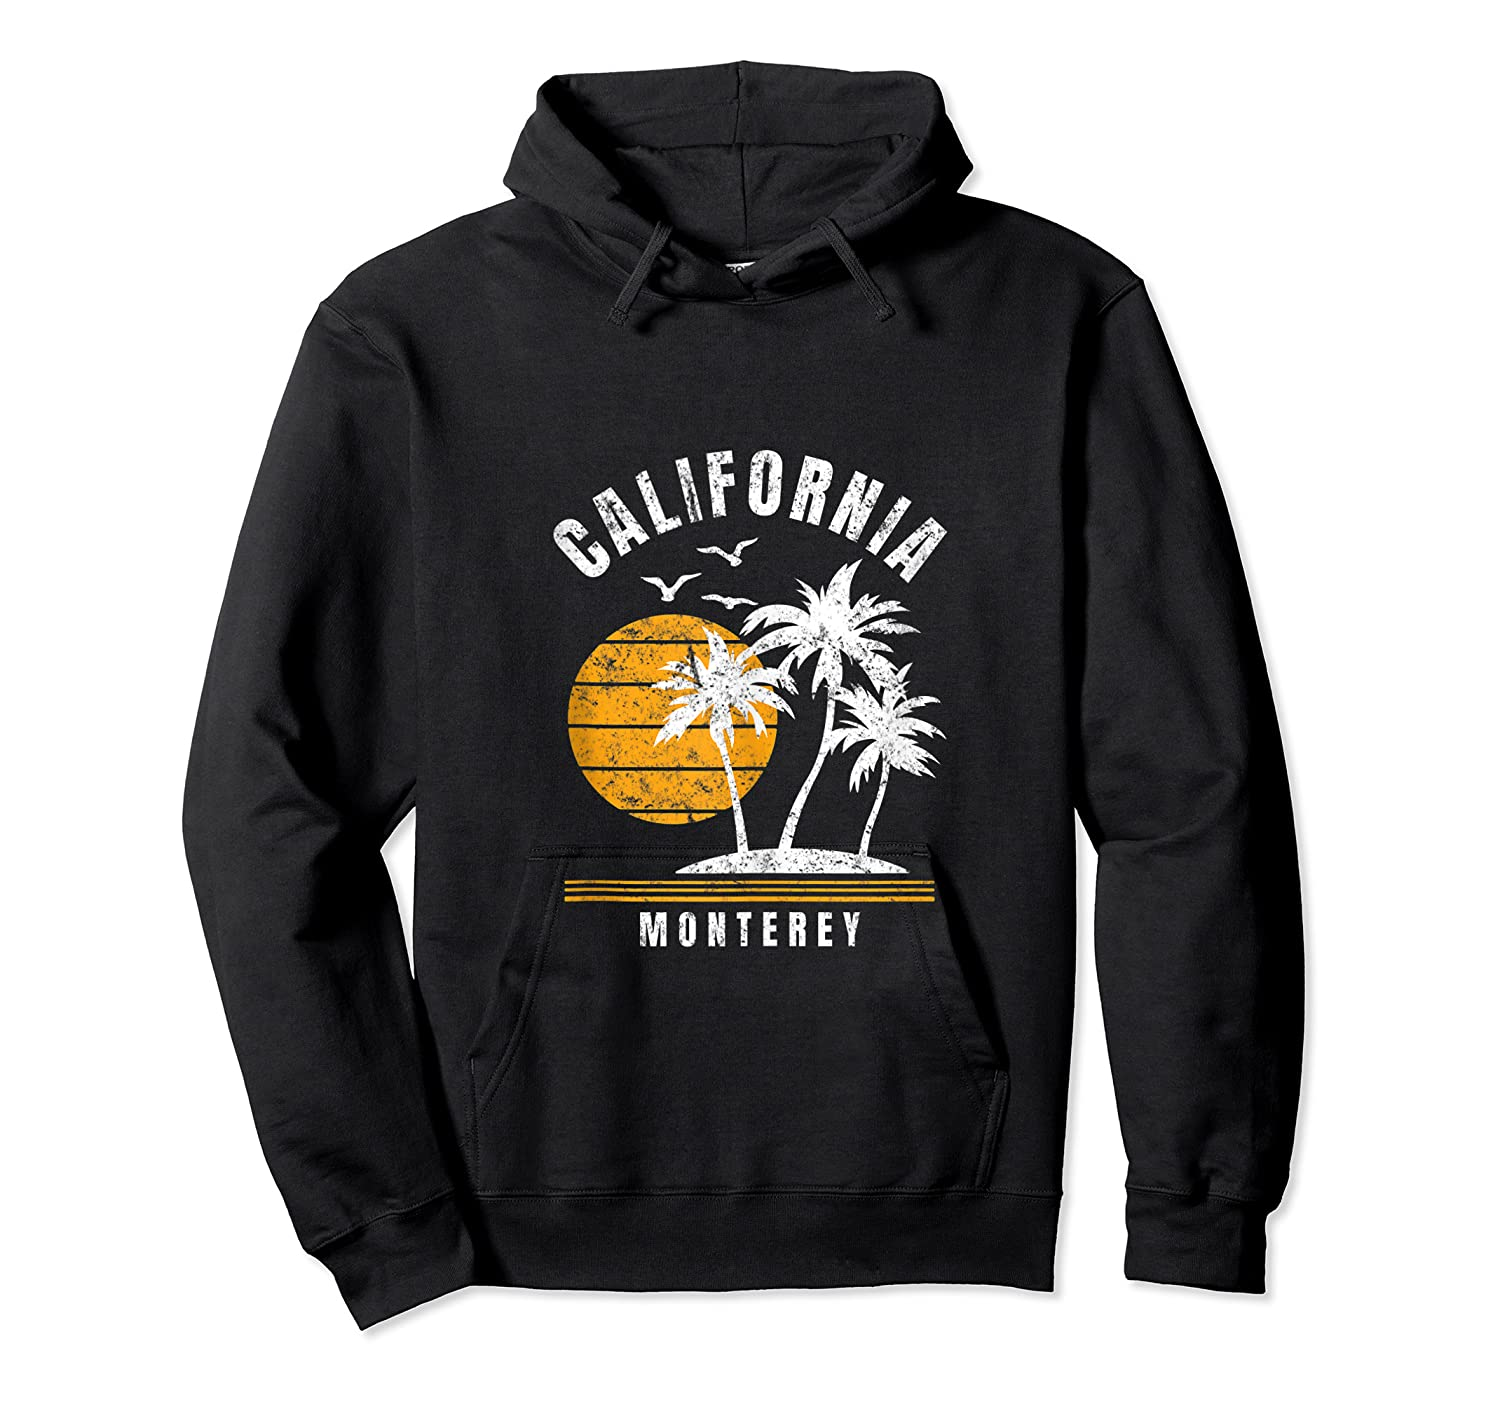 Monterey California, Ca Beach Vacation Gifts Shirts Unisex Pullover Hoodie